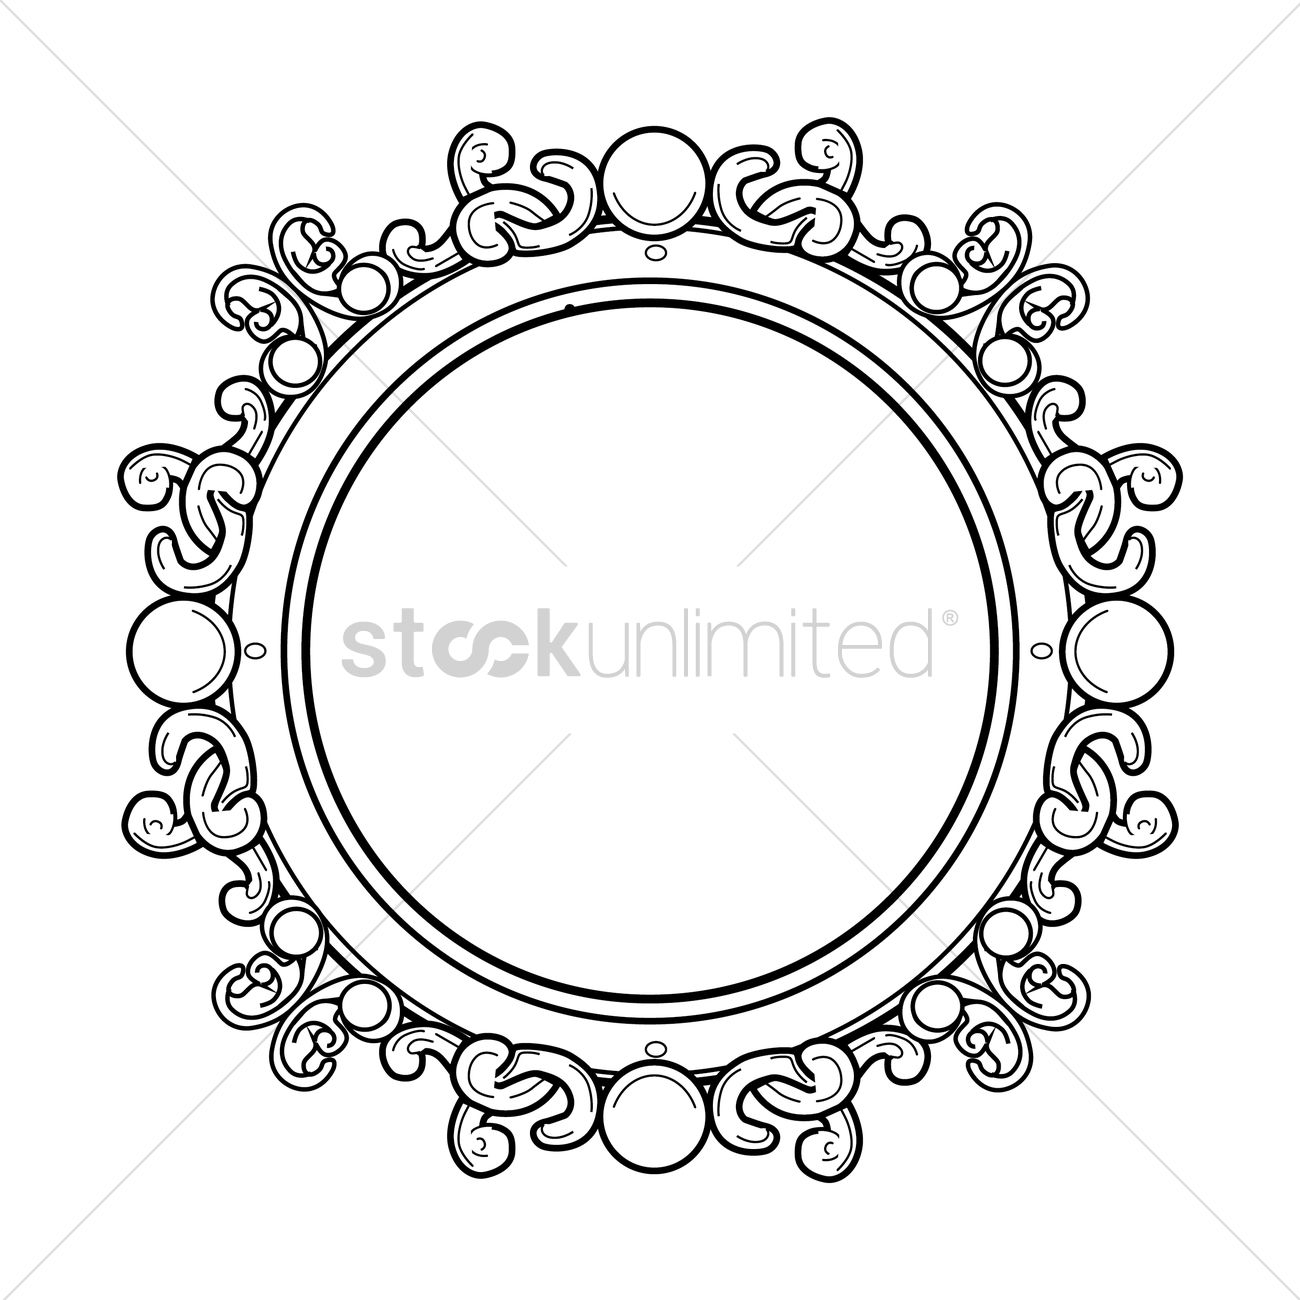 Antique frame drawing Cameo Antique Frame Vector Graphic Can Stock Photo Antique Frame Vector Image 1427167 Stockunlimited